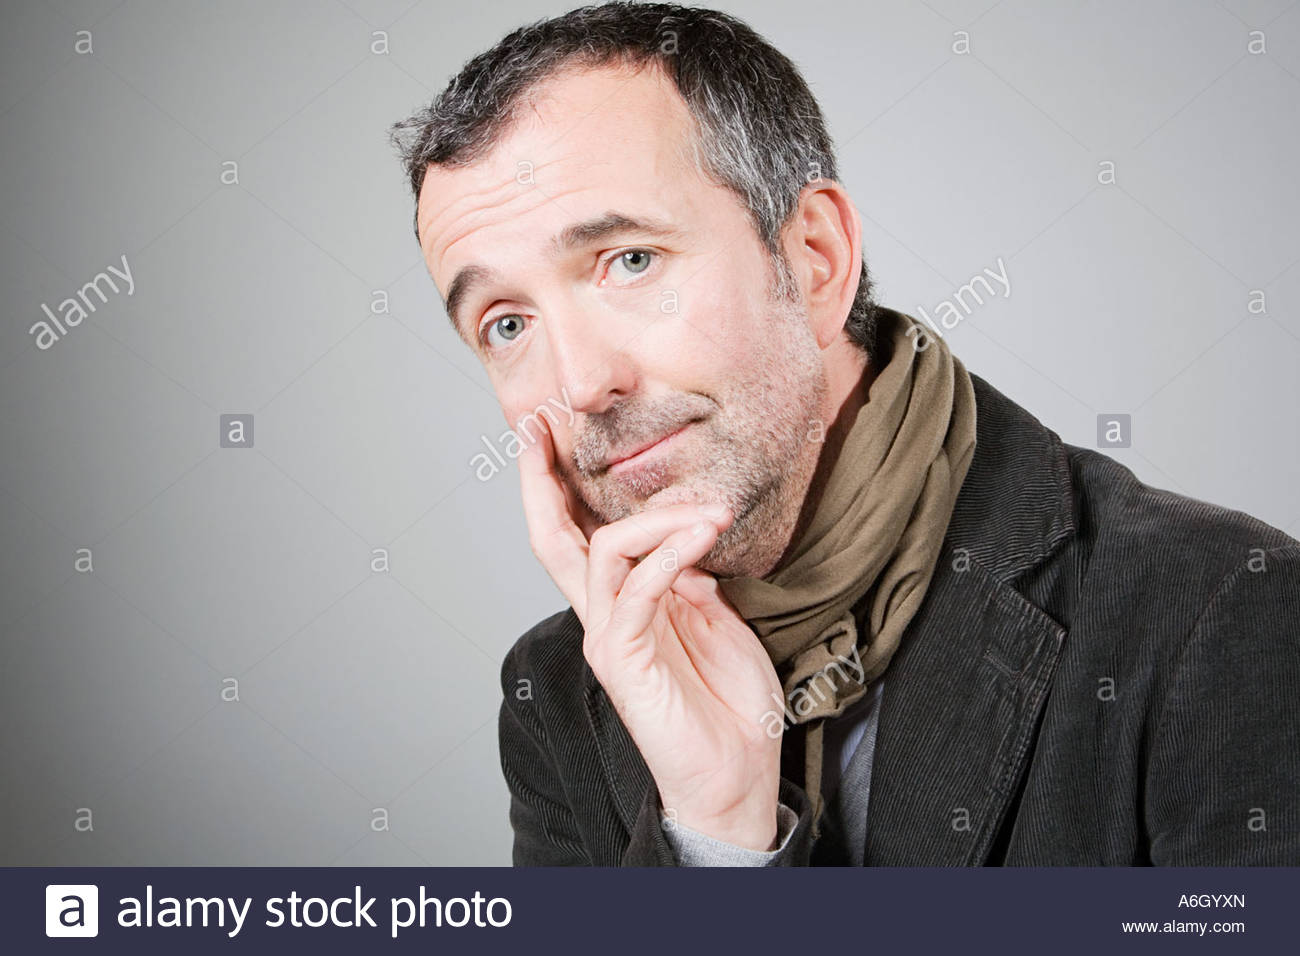 Wistful man - Stock Image